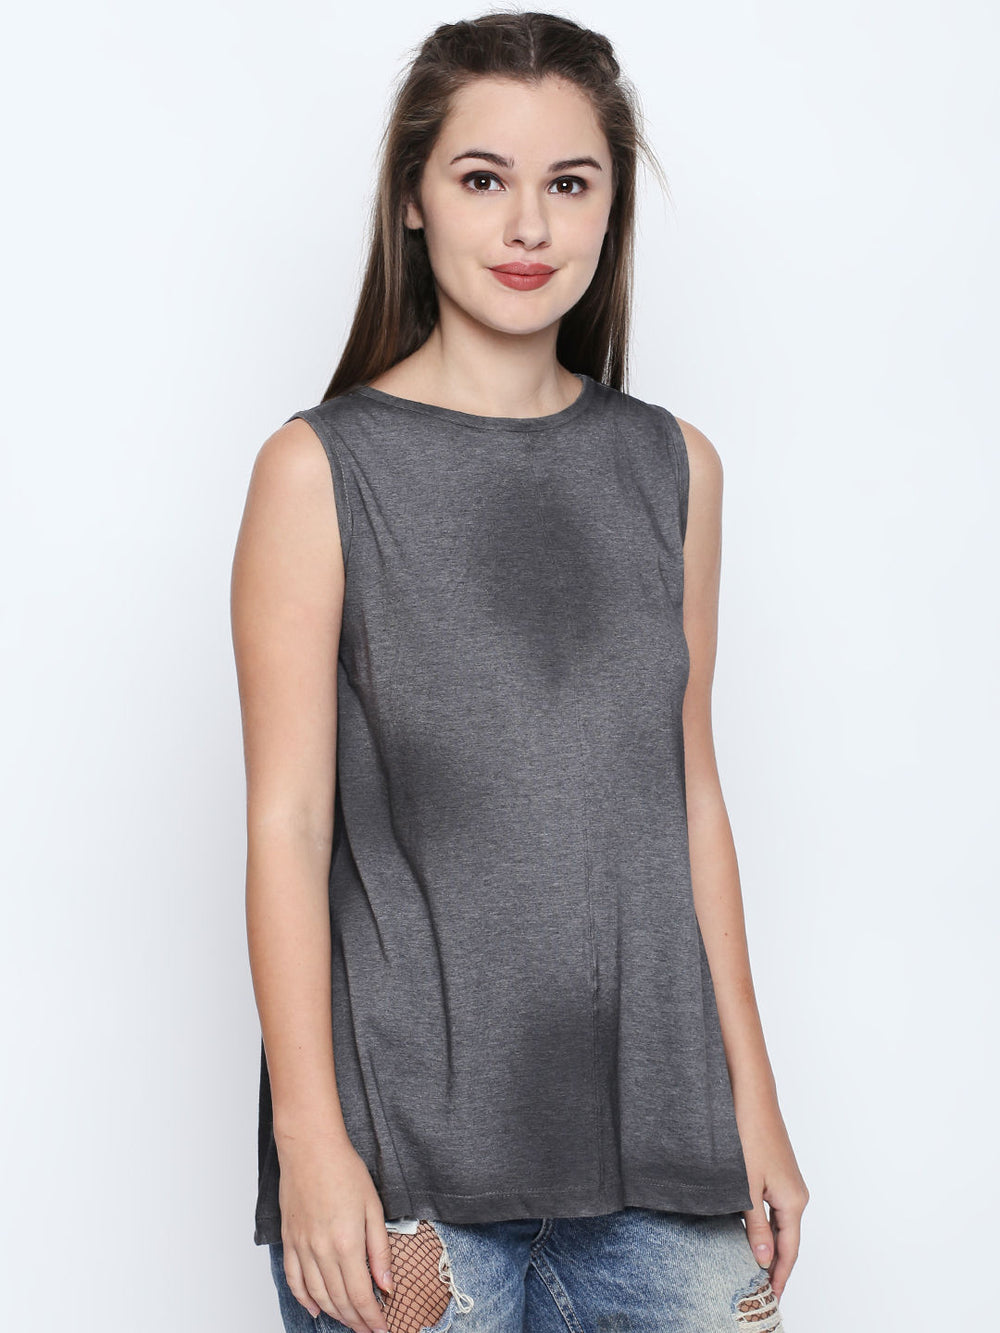 Dark Grey Melange Tank Top For Women's